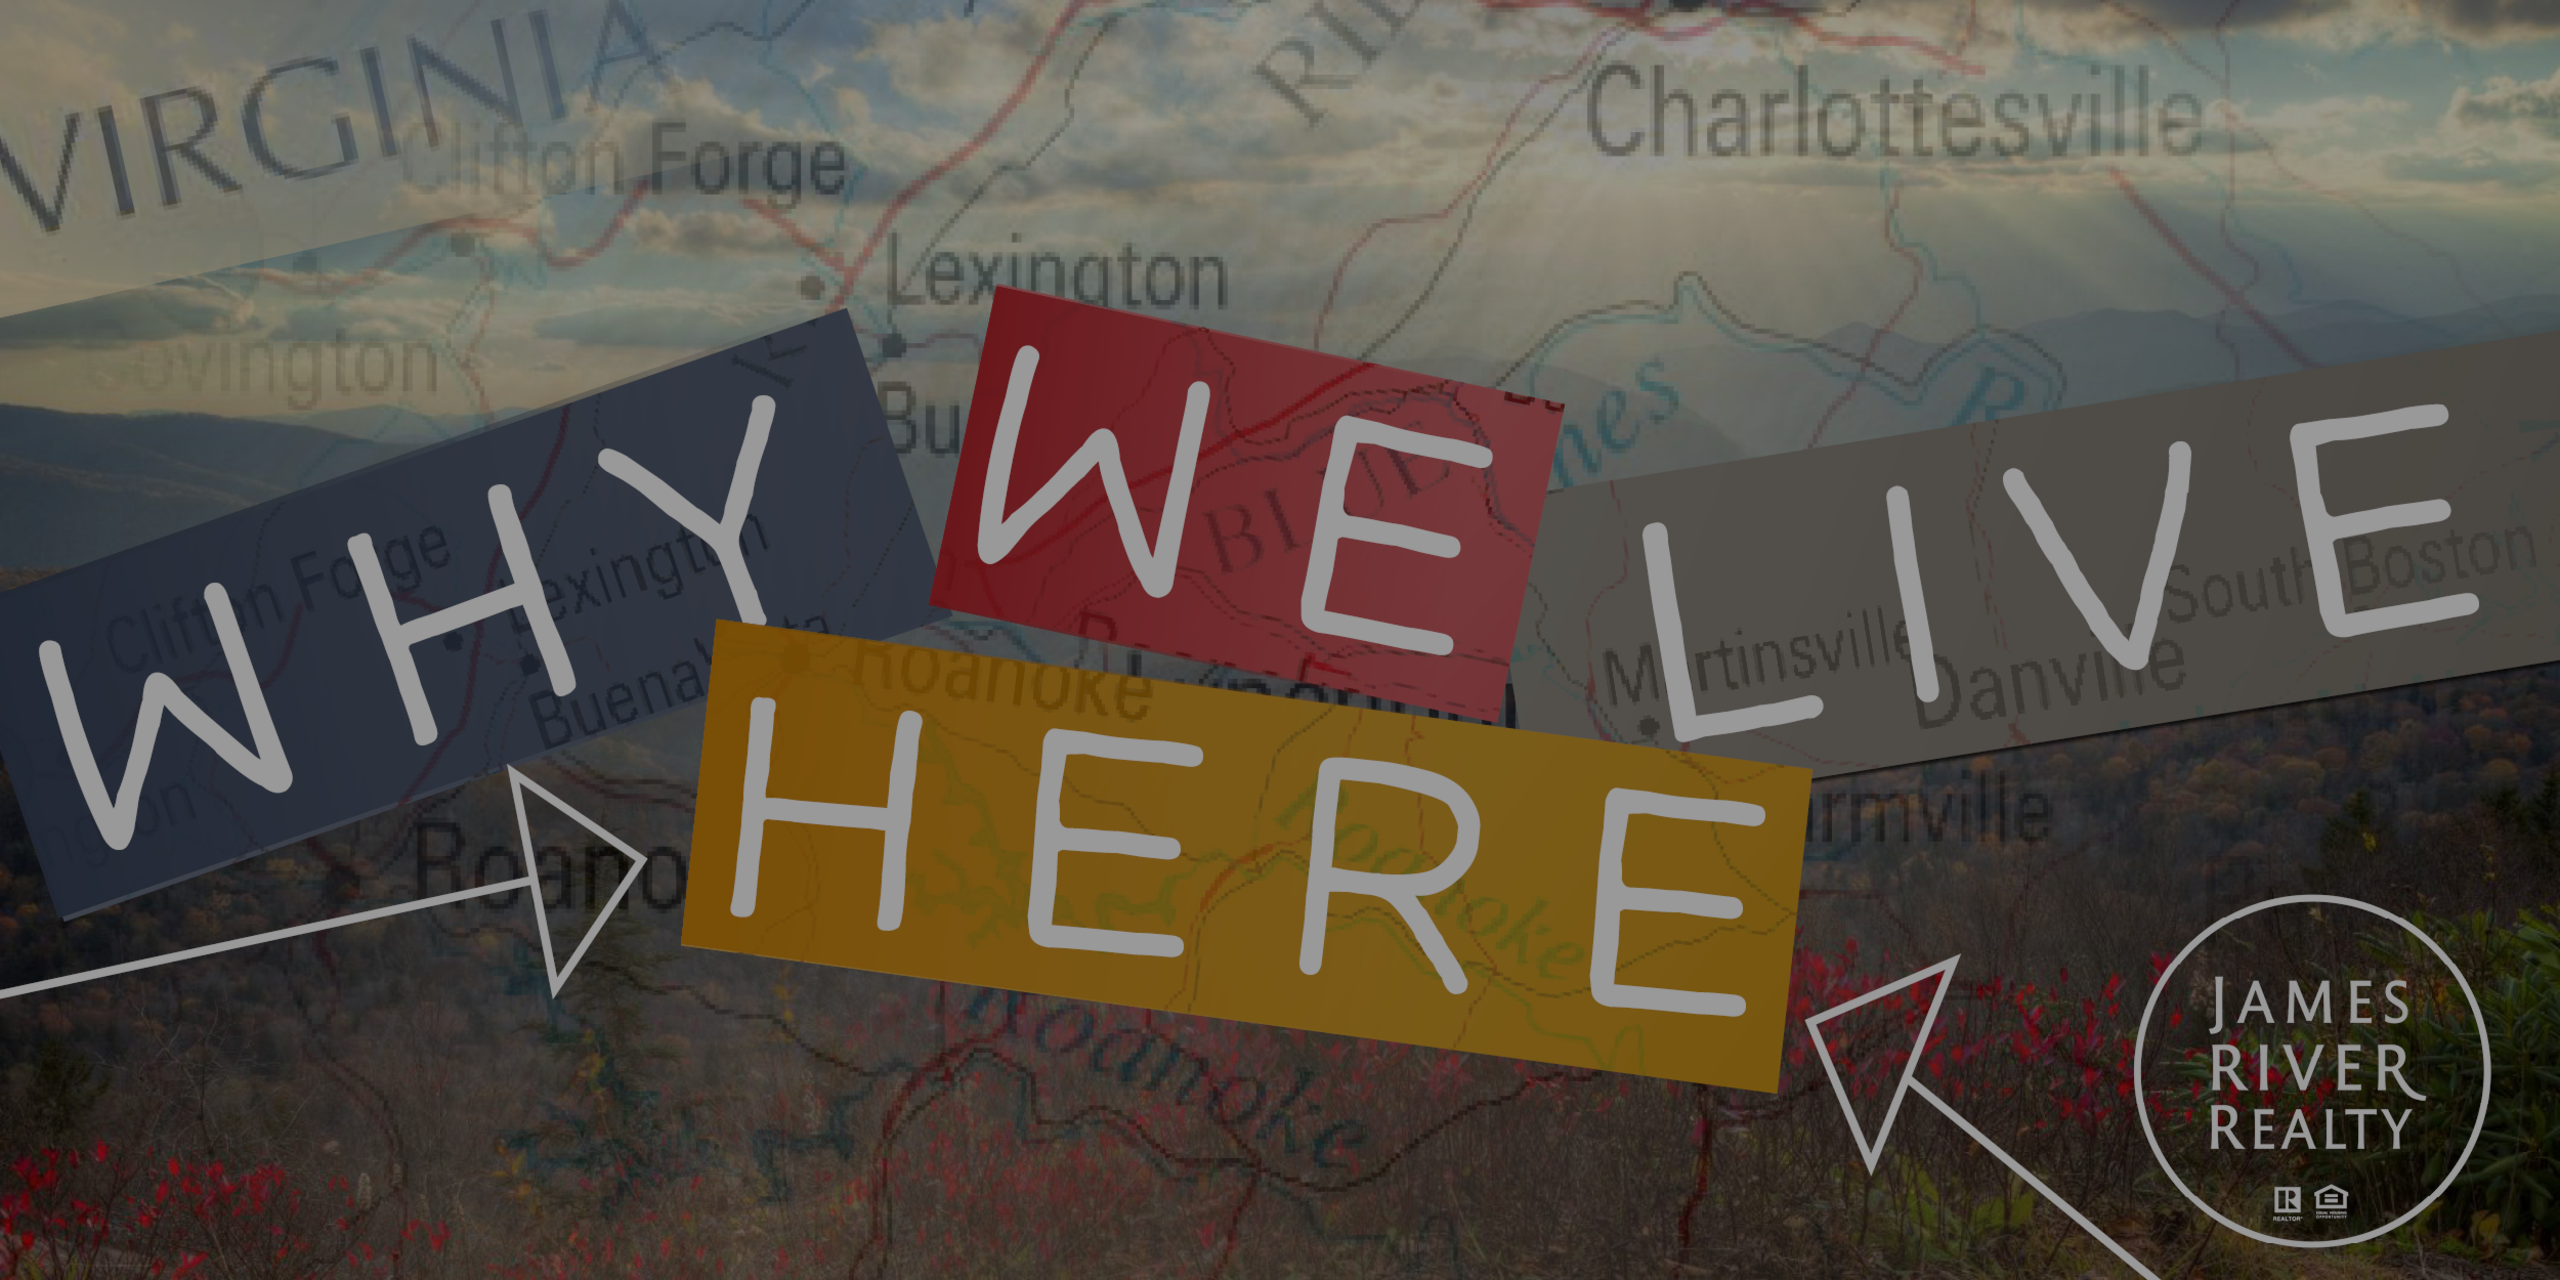 Why We Live Here – Shenandoah Valley